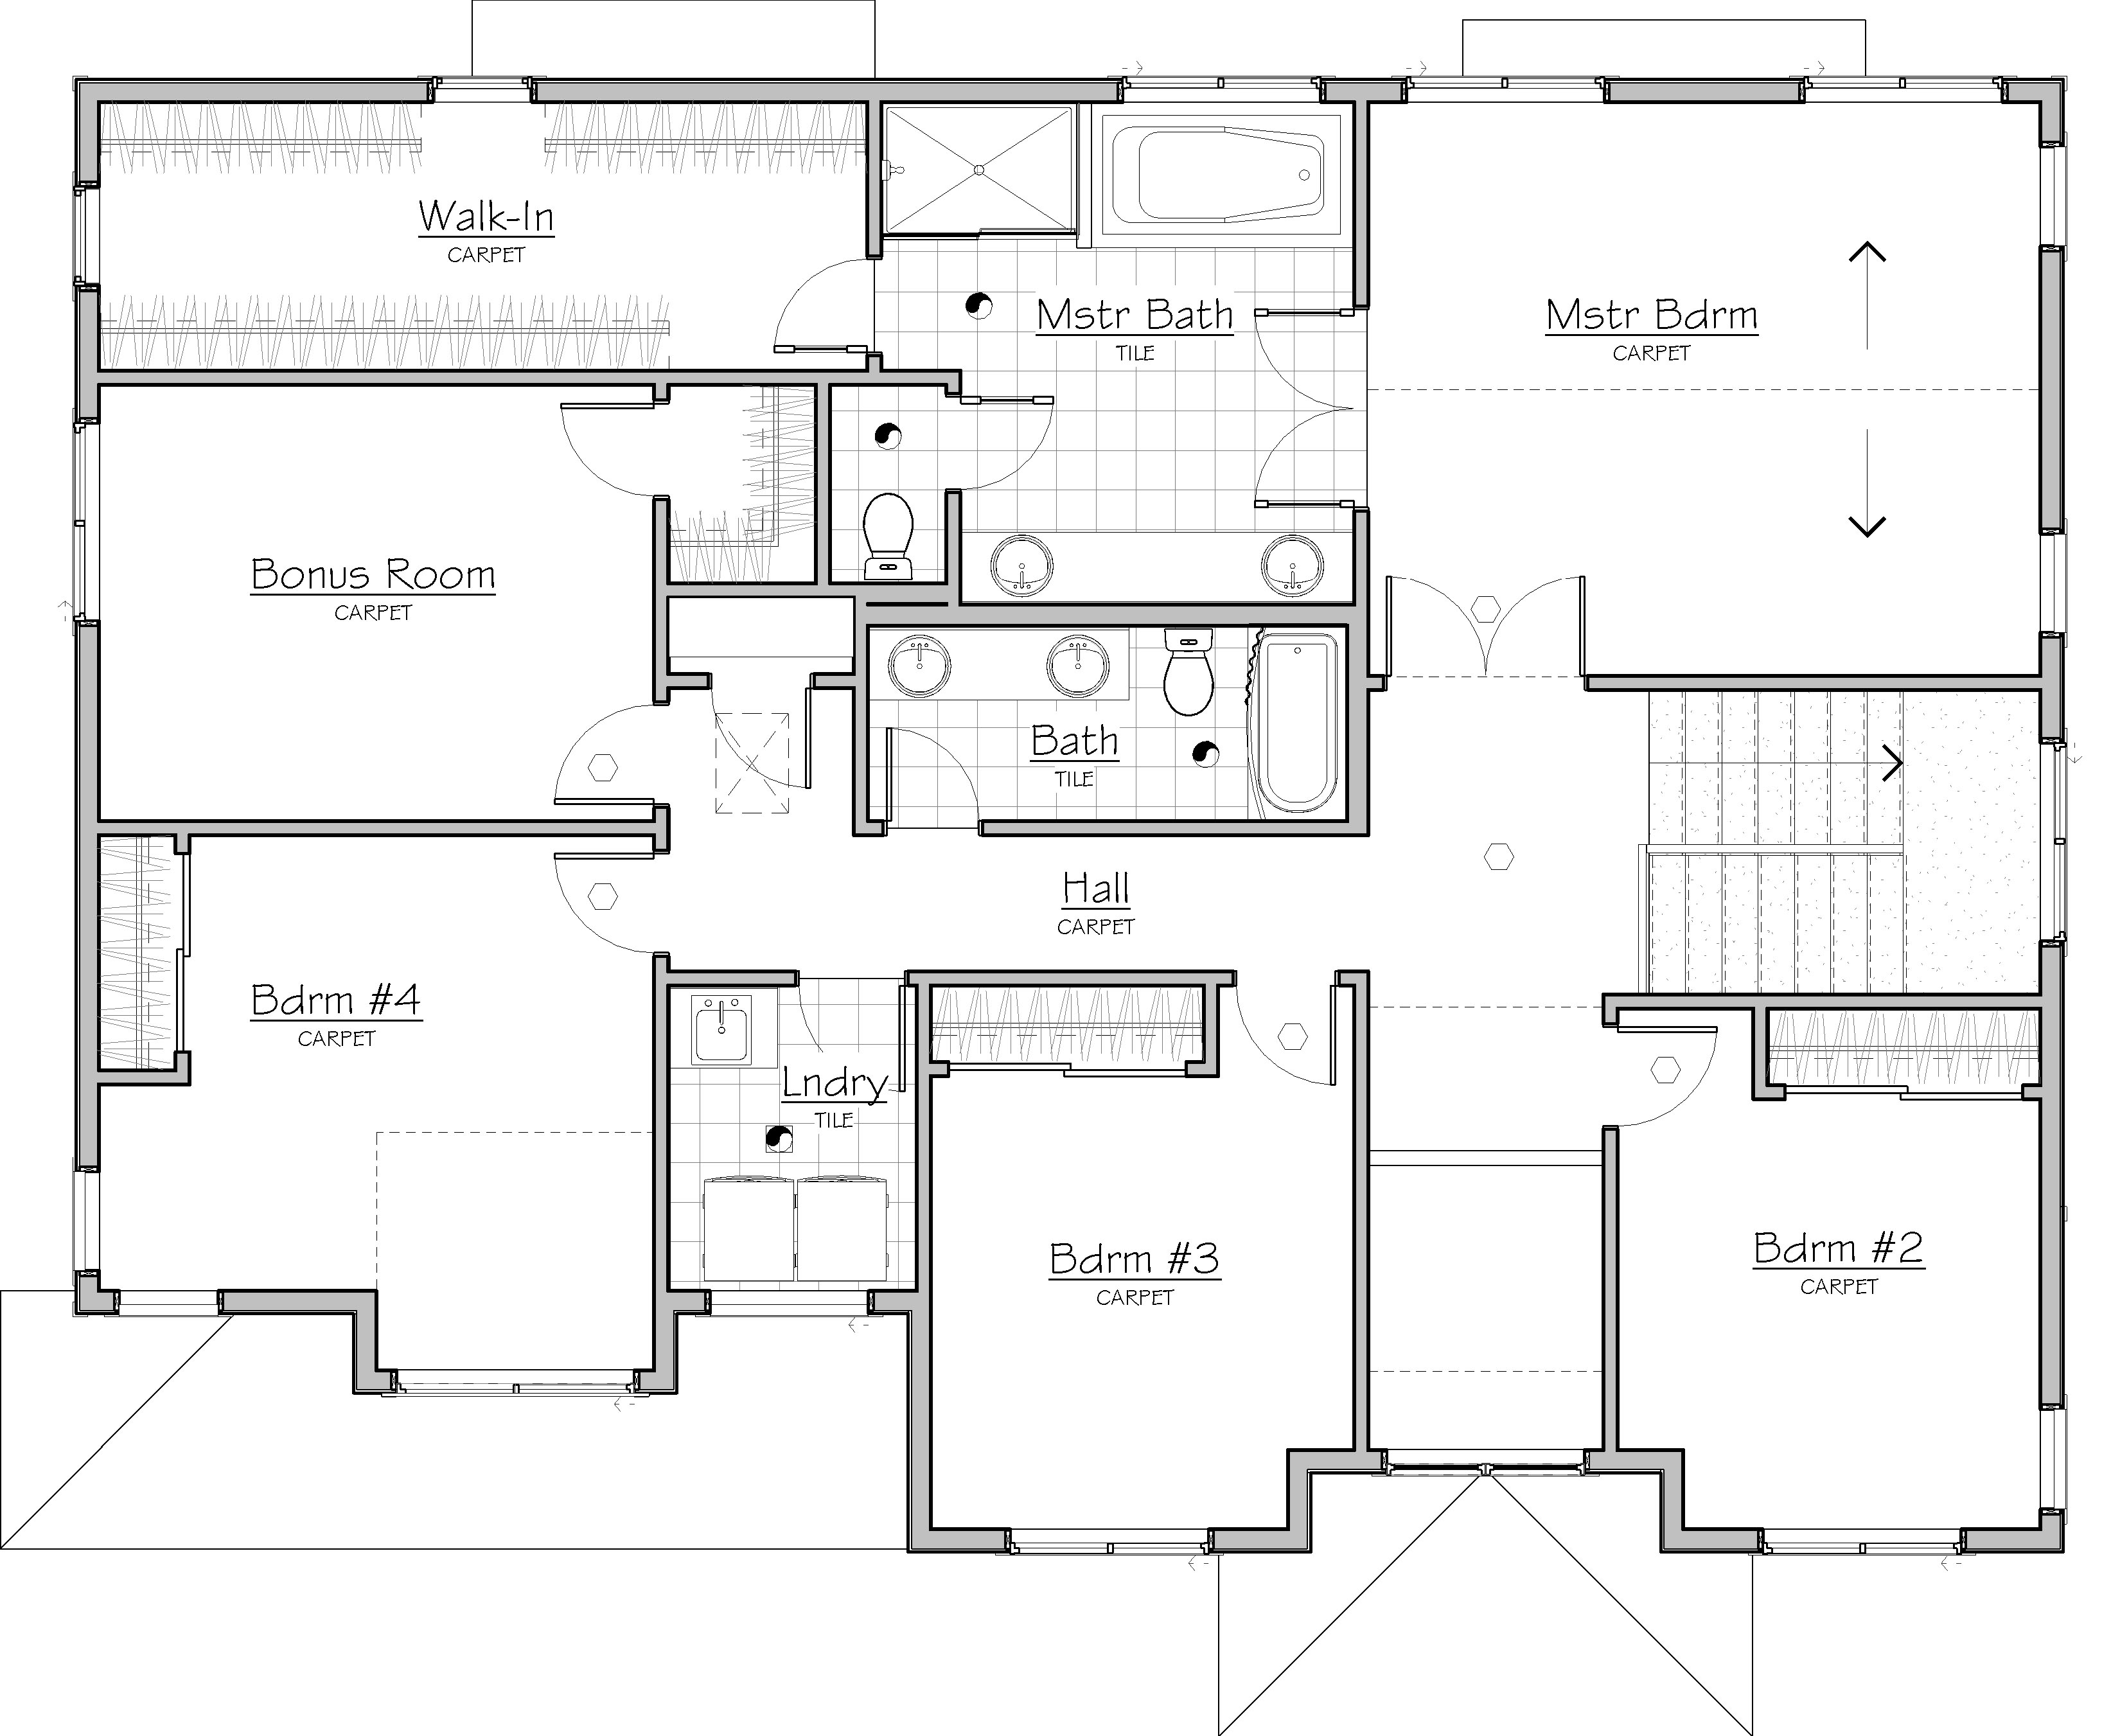 708 olympia ave ne lot 2 custom homes seattle bellevue for Copying house plans